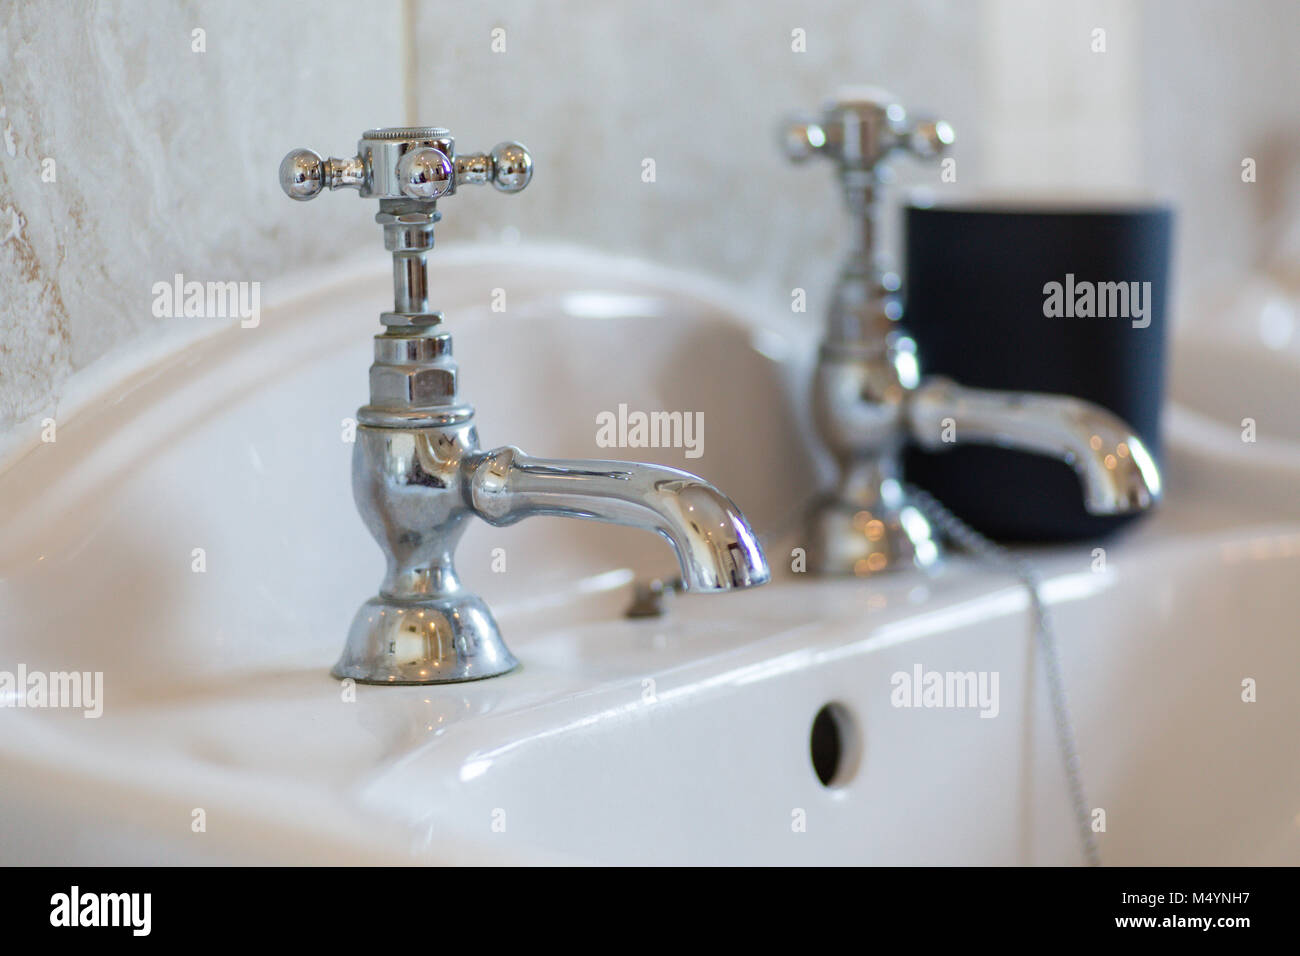 Antique Taps Stock Photos & Antique Taps Stock Images - Alamy